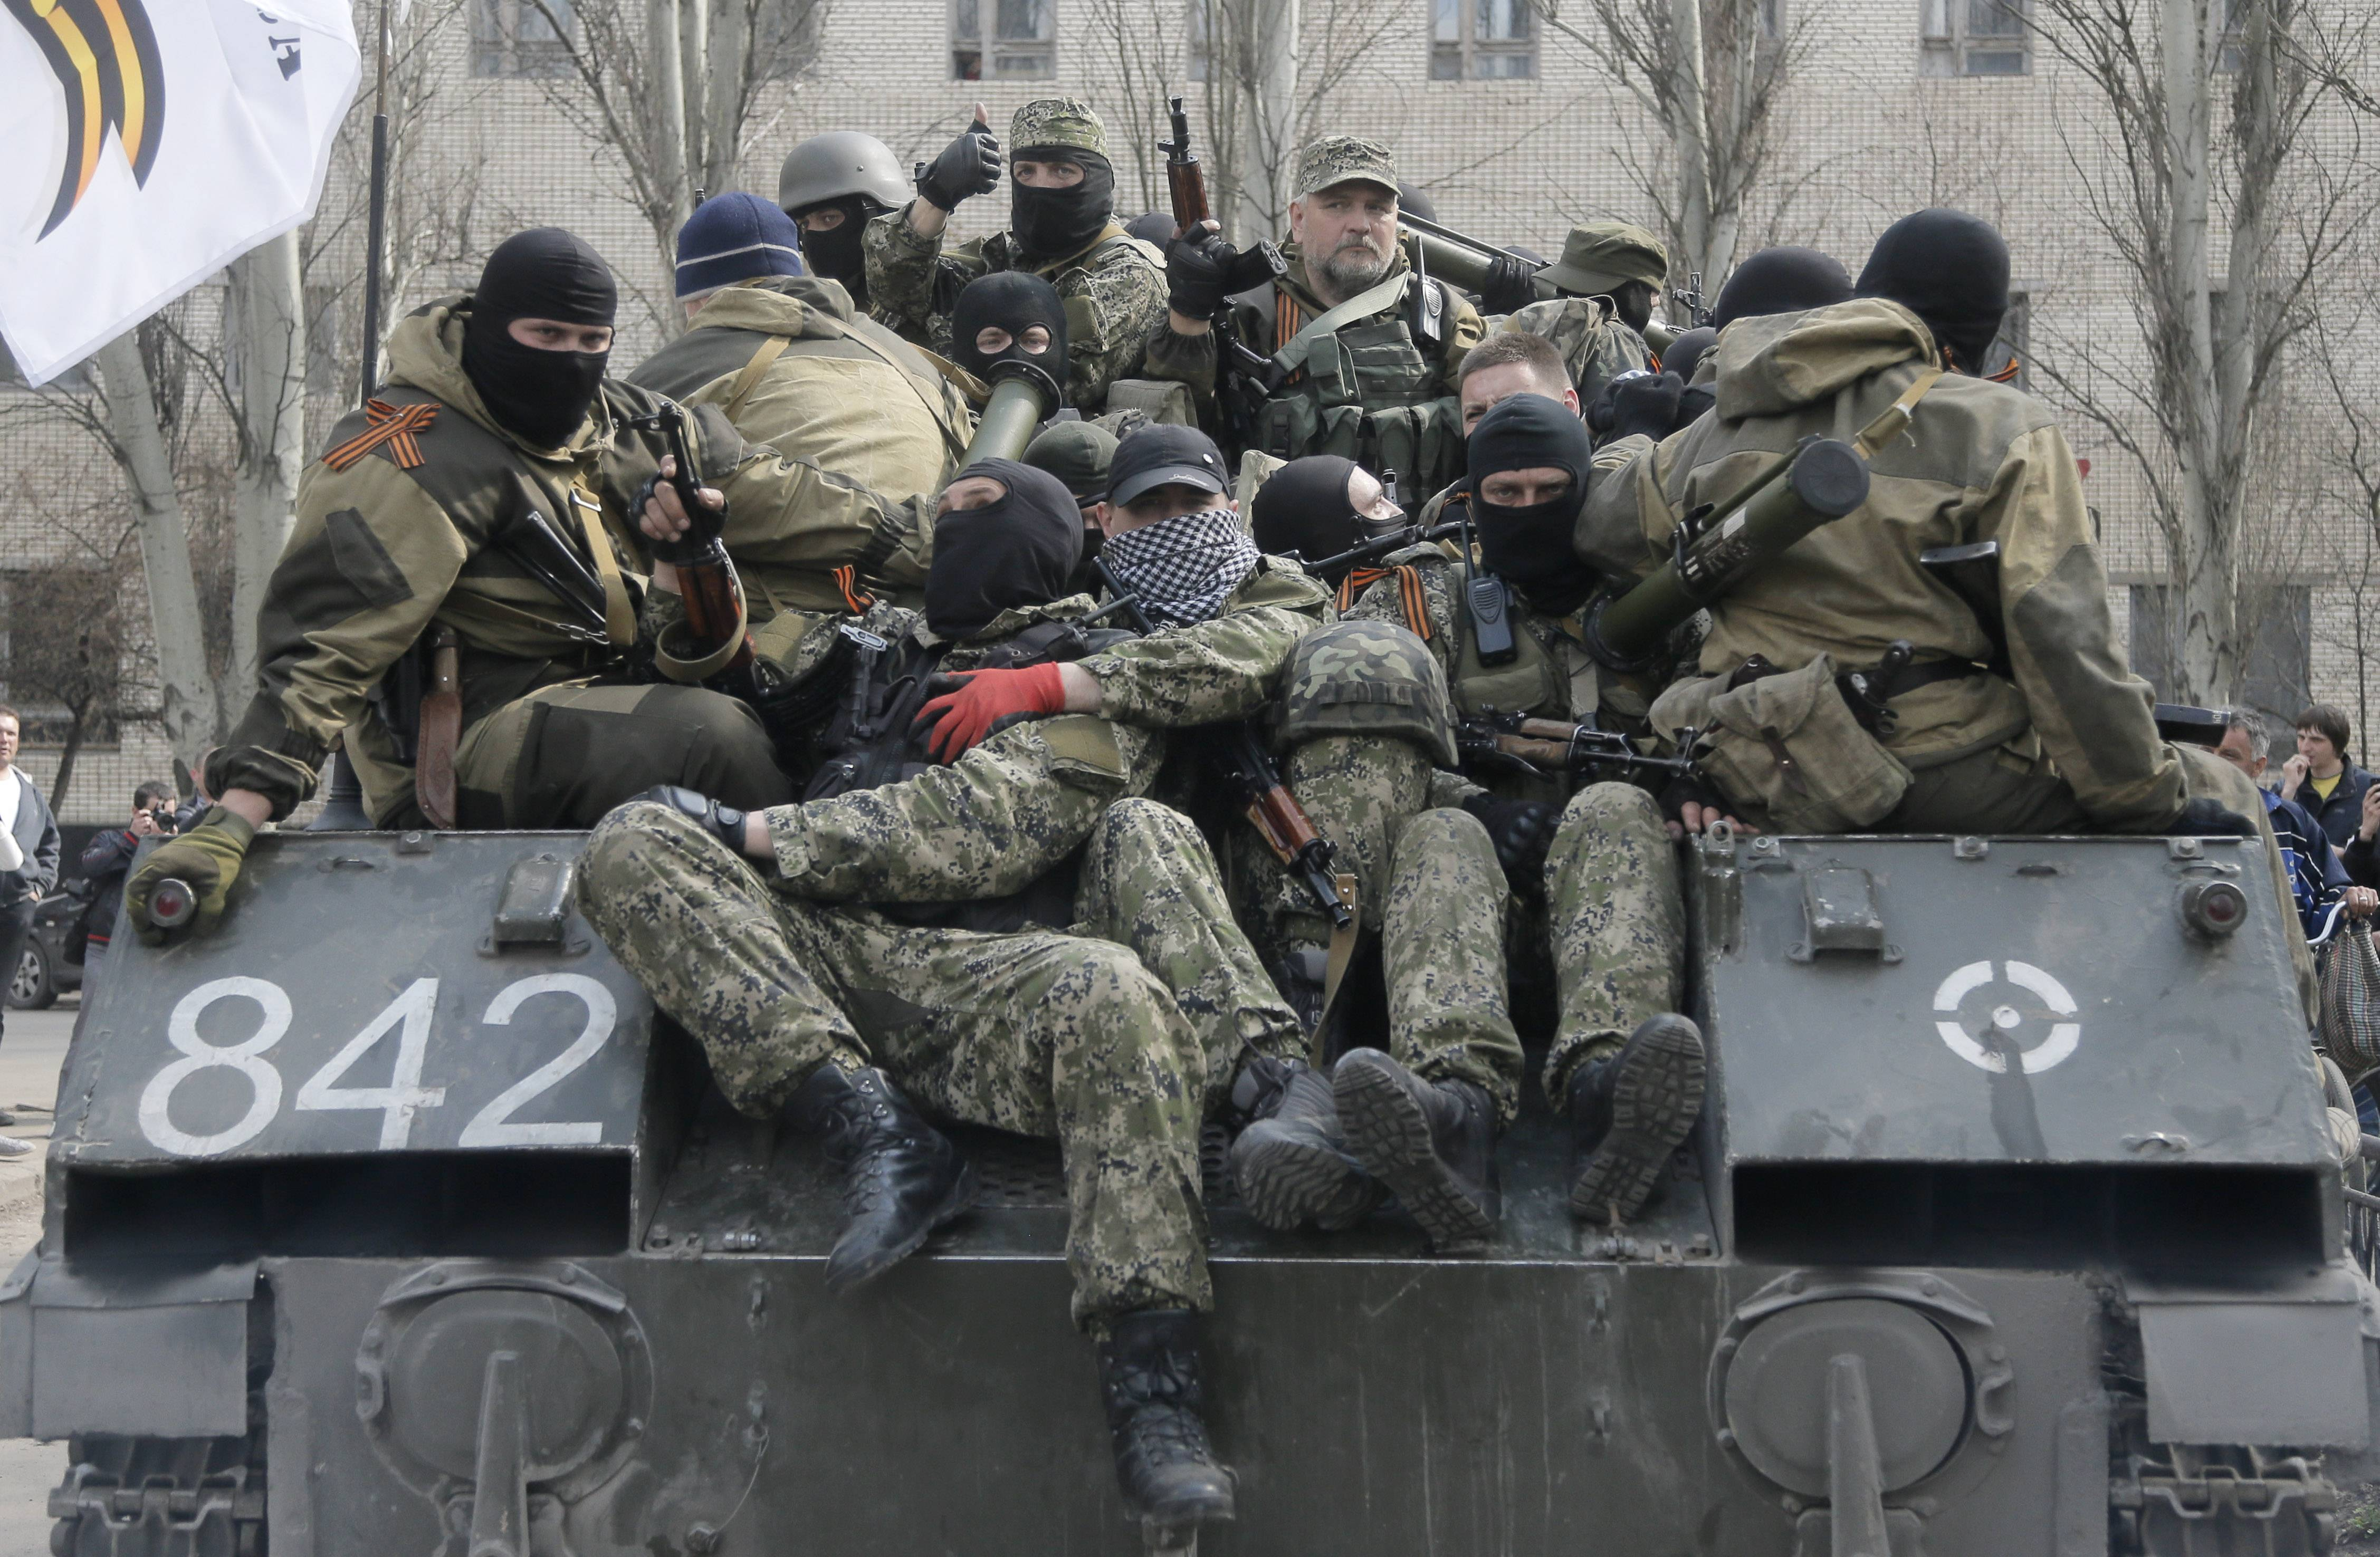 A combat vehicle with pro-Russian gunman on top runs Wednesday through downtown Slovyansk. The troops on those vehicles wore green camouflage uniforms, had automatic weapons and grenade launchers and at least one had the St. George ribbon attached to his uniform, which has become a symbol of the pro-Russian insurgency in eastern Ukraine.